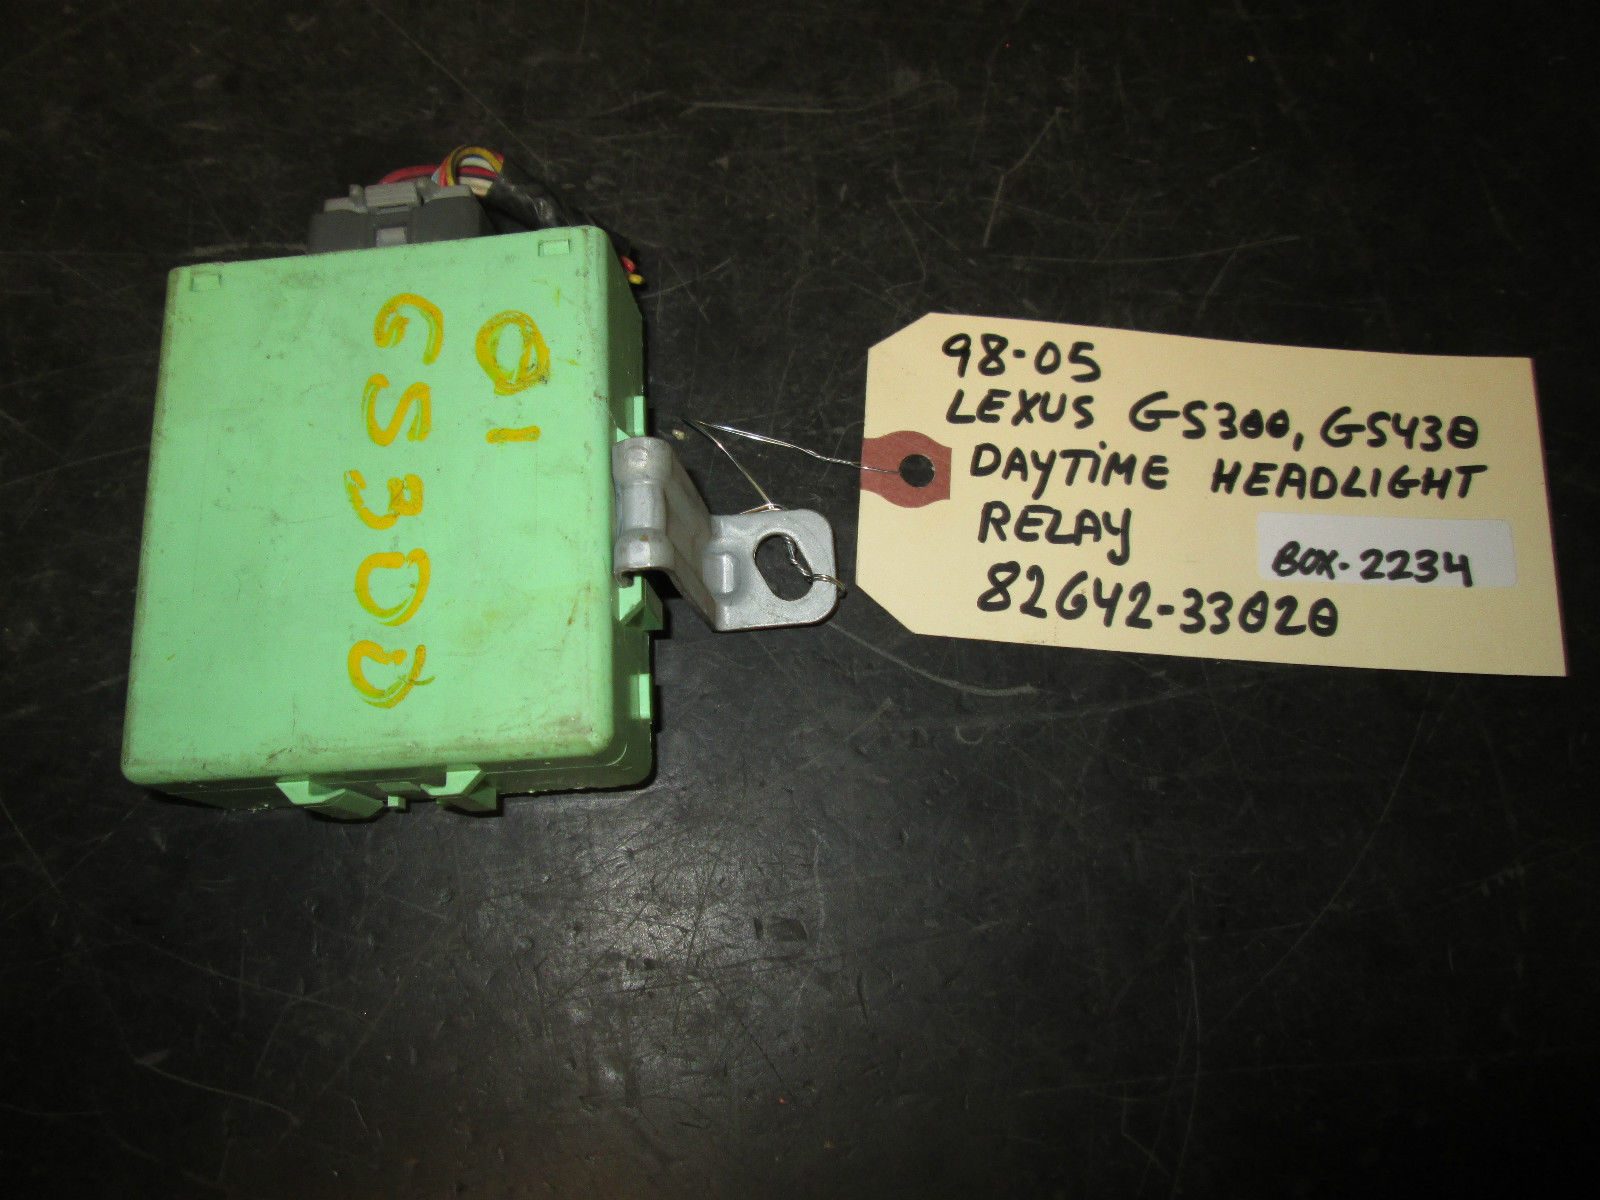 Primary image for 98-05 LEXUS GS300,GS430 DAYTIME HEADLIGHT RELAY #82642-33020 *See item*